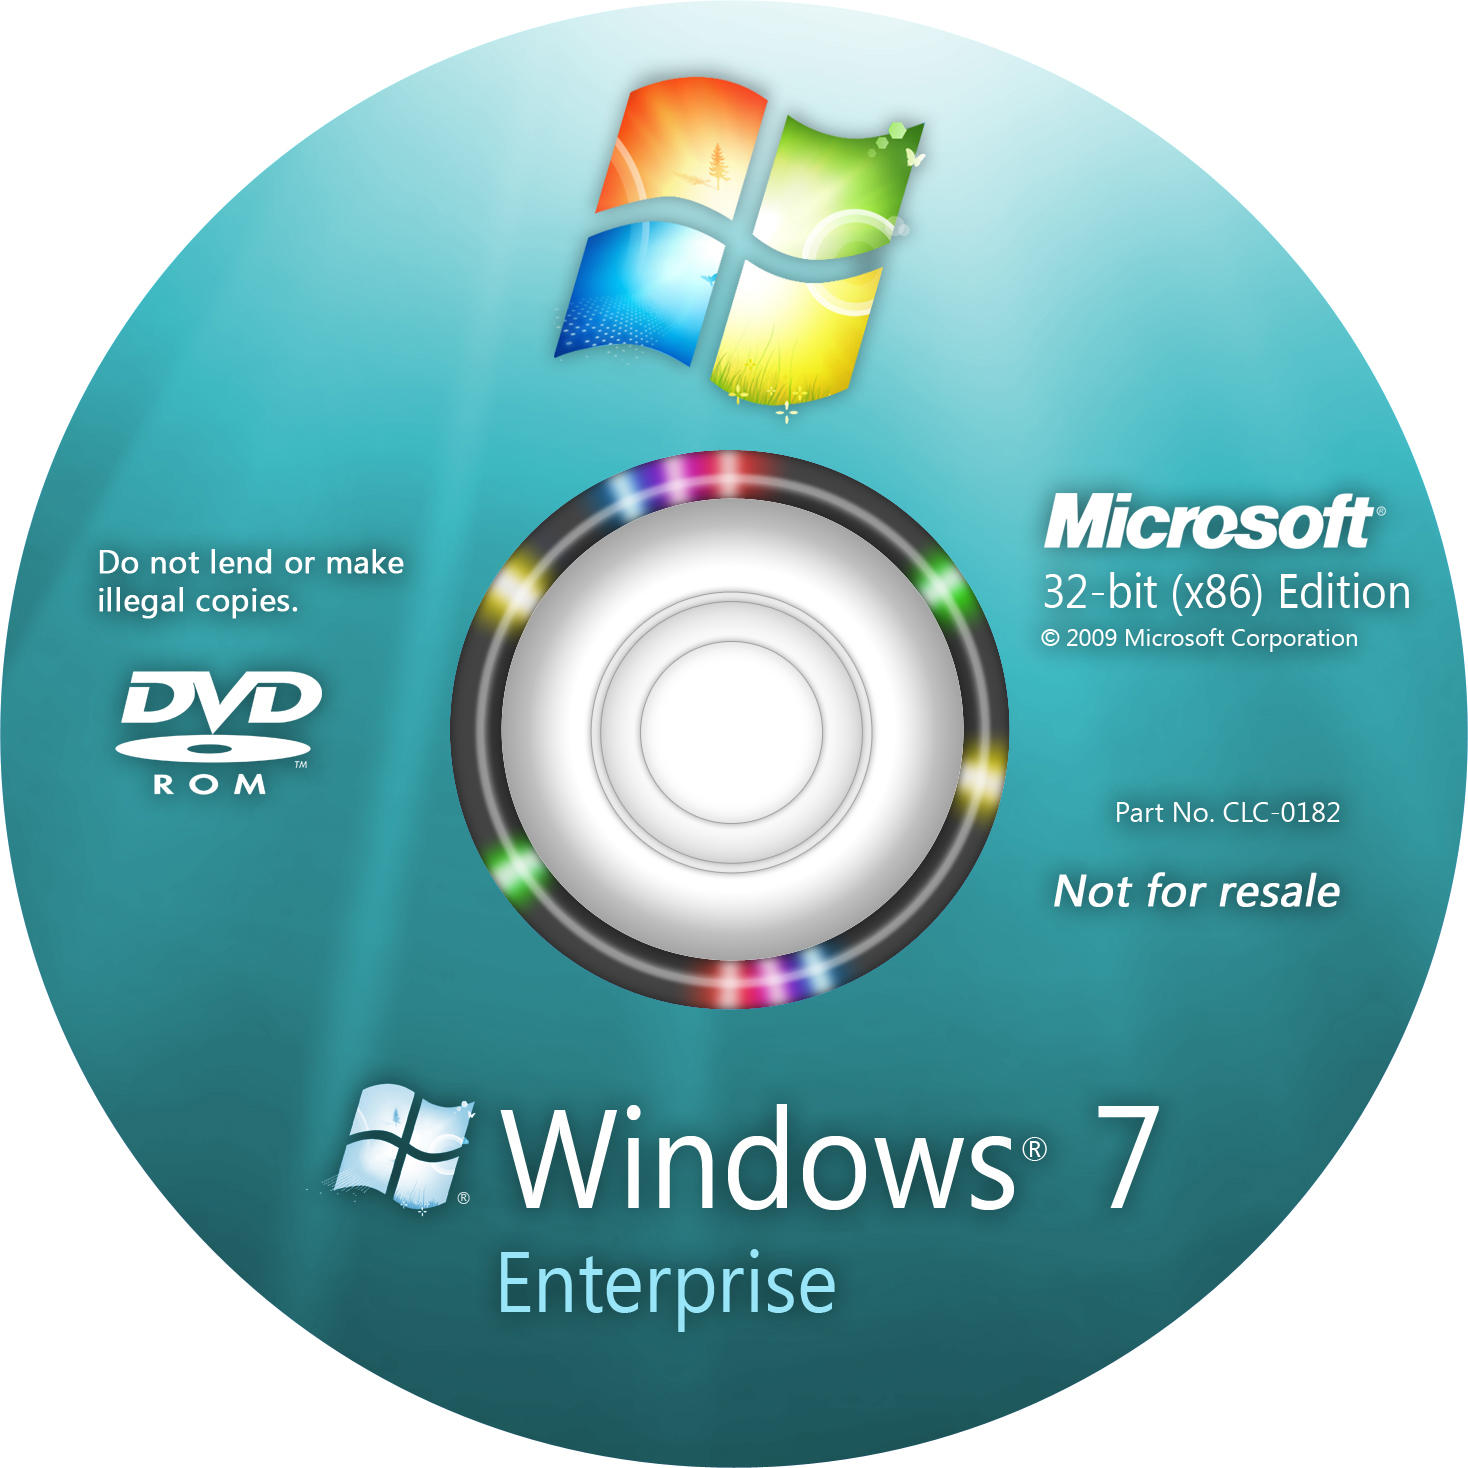 idm free download full version with key crack for windows 7 latest version